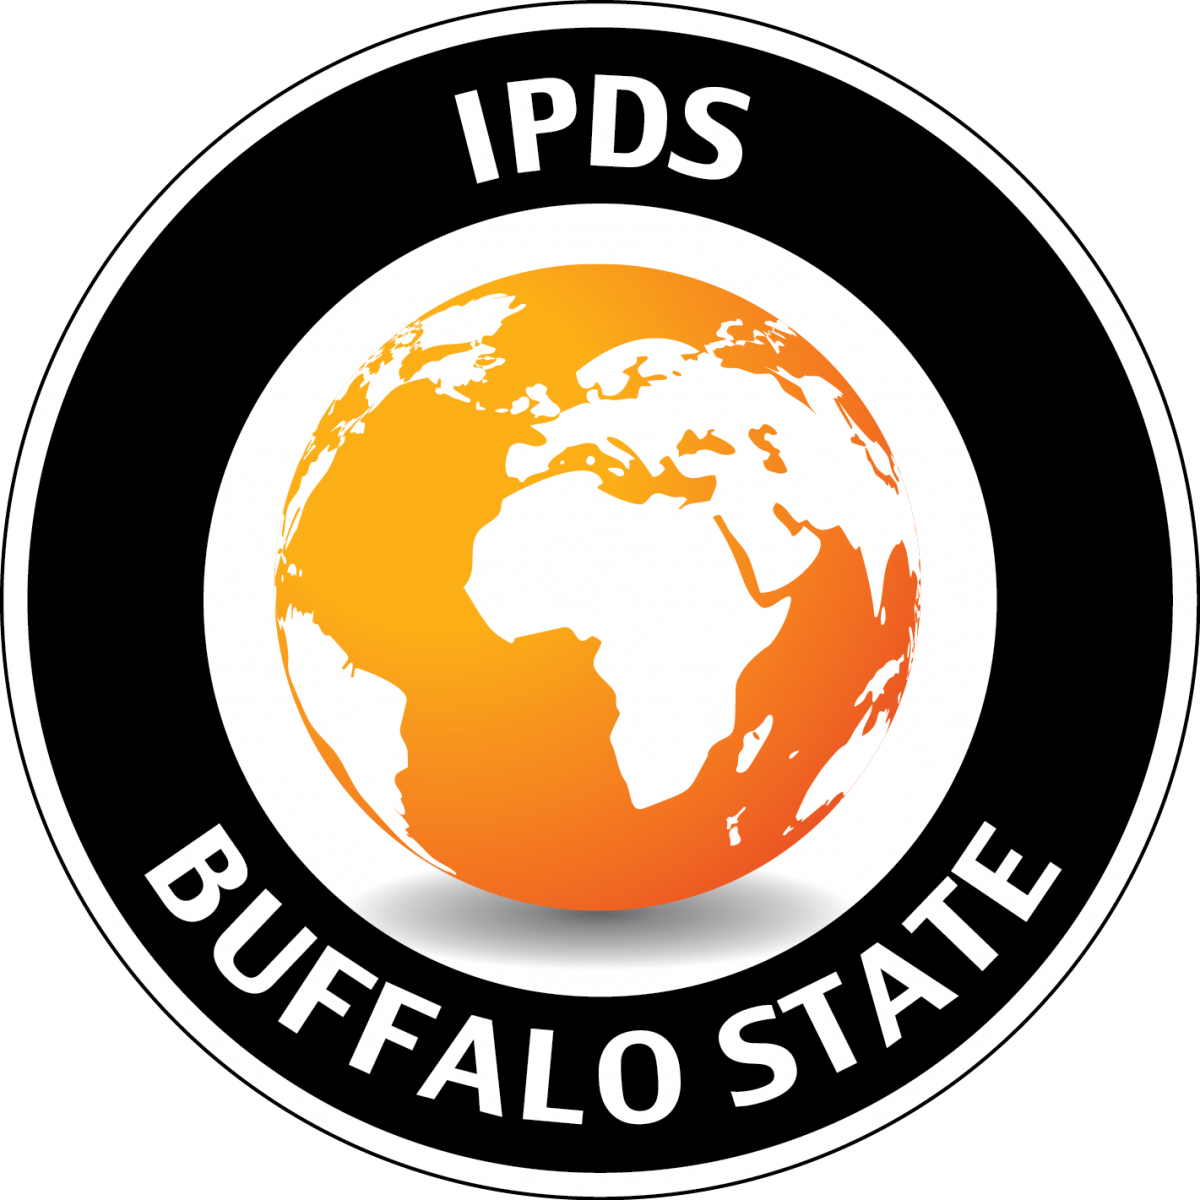 IPDS Buffalo State icon with globe